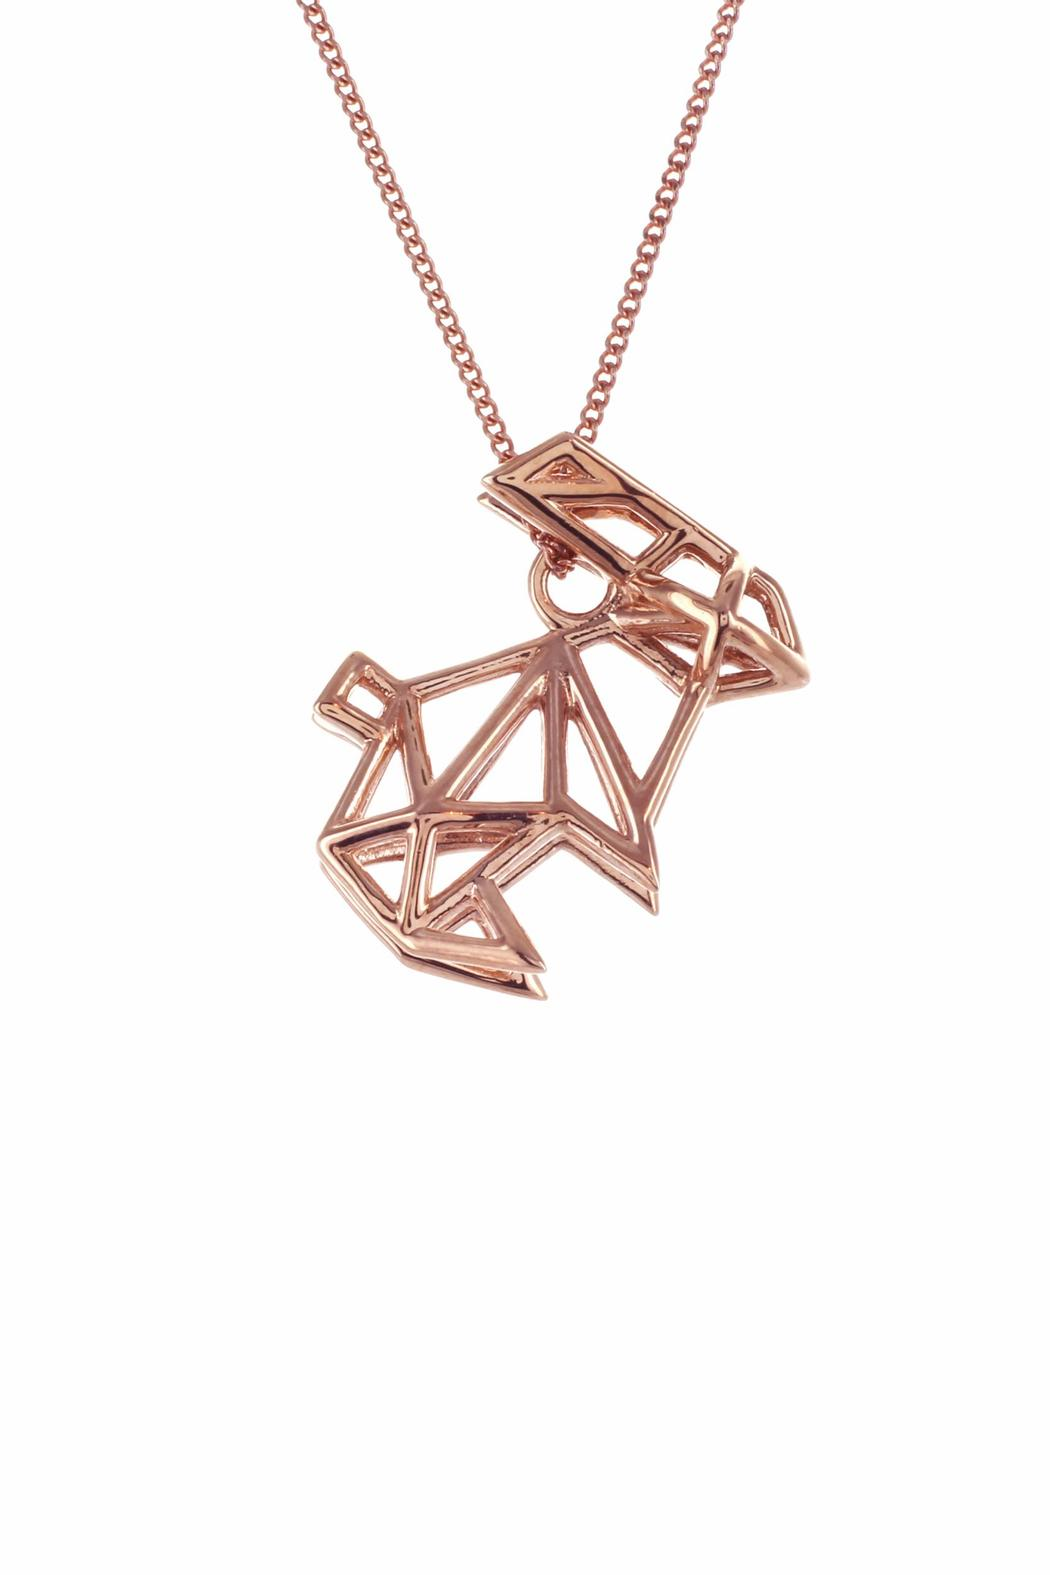 Origami Jewellery Necklace Frame Rabbit from Paris by ... - photo#39